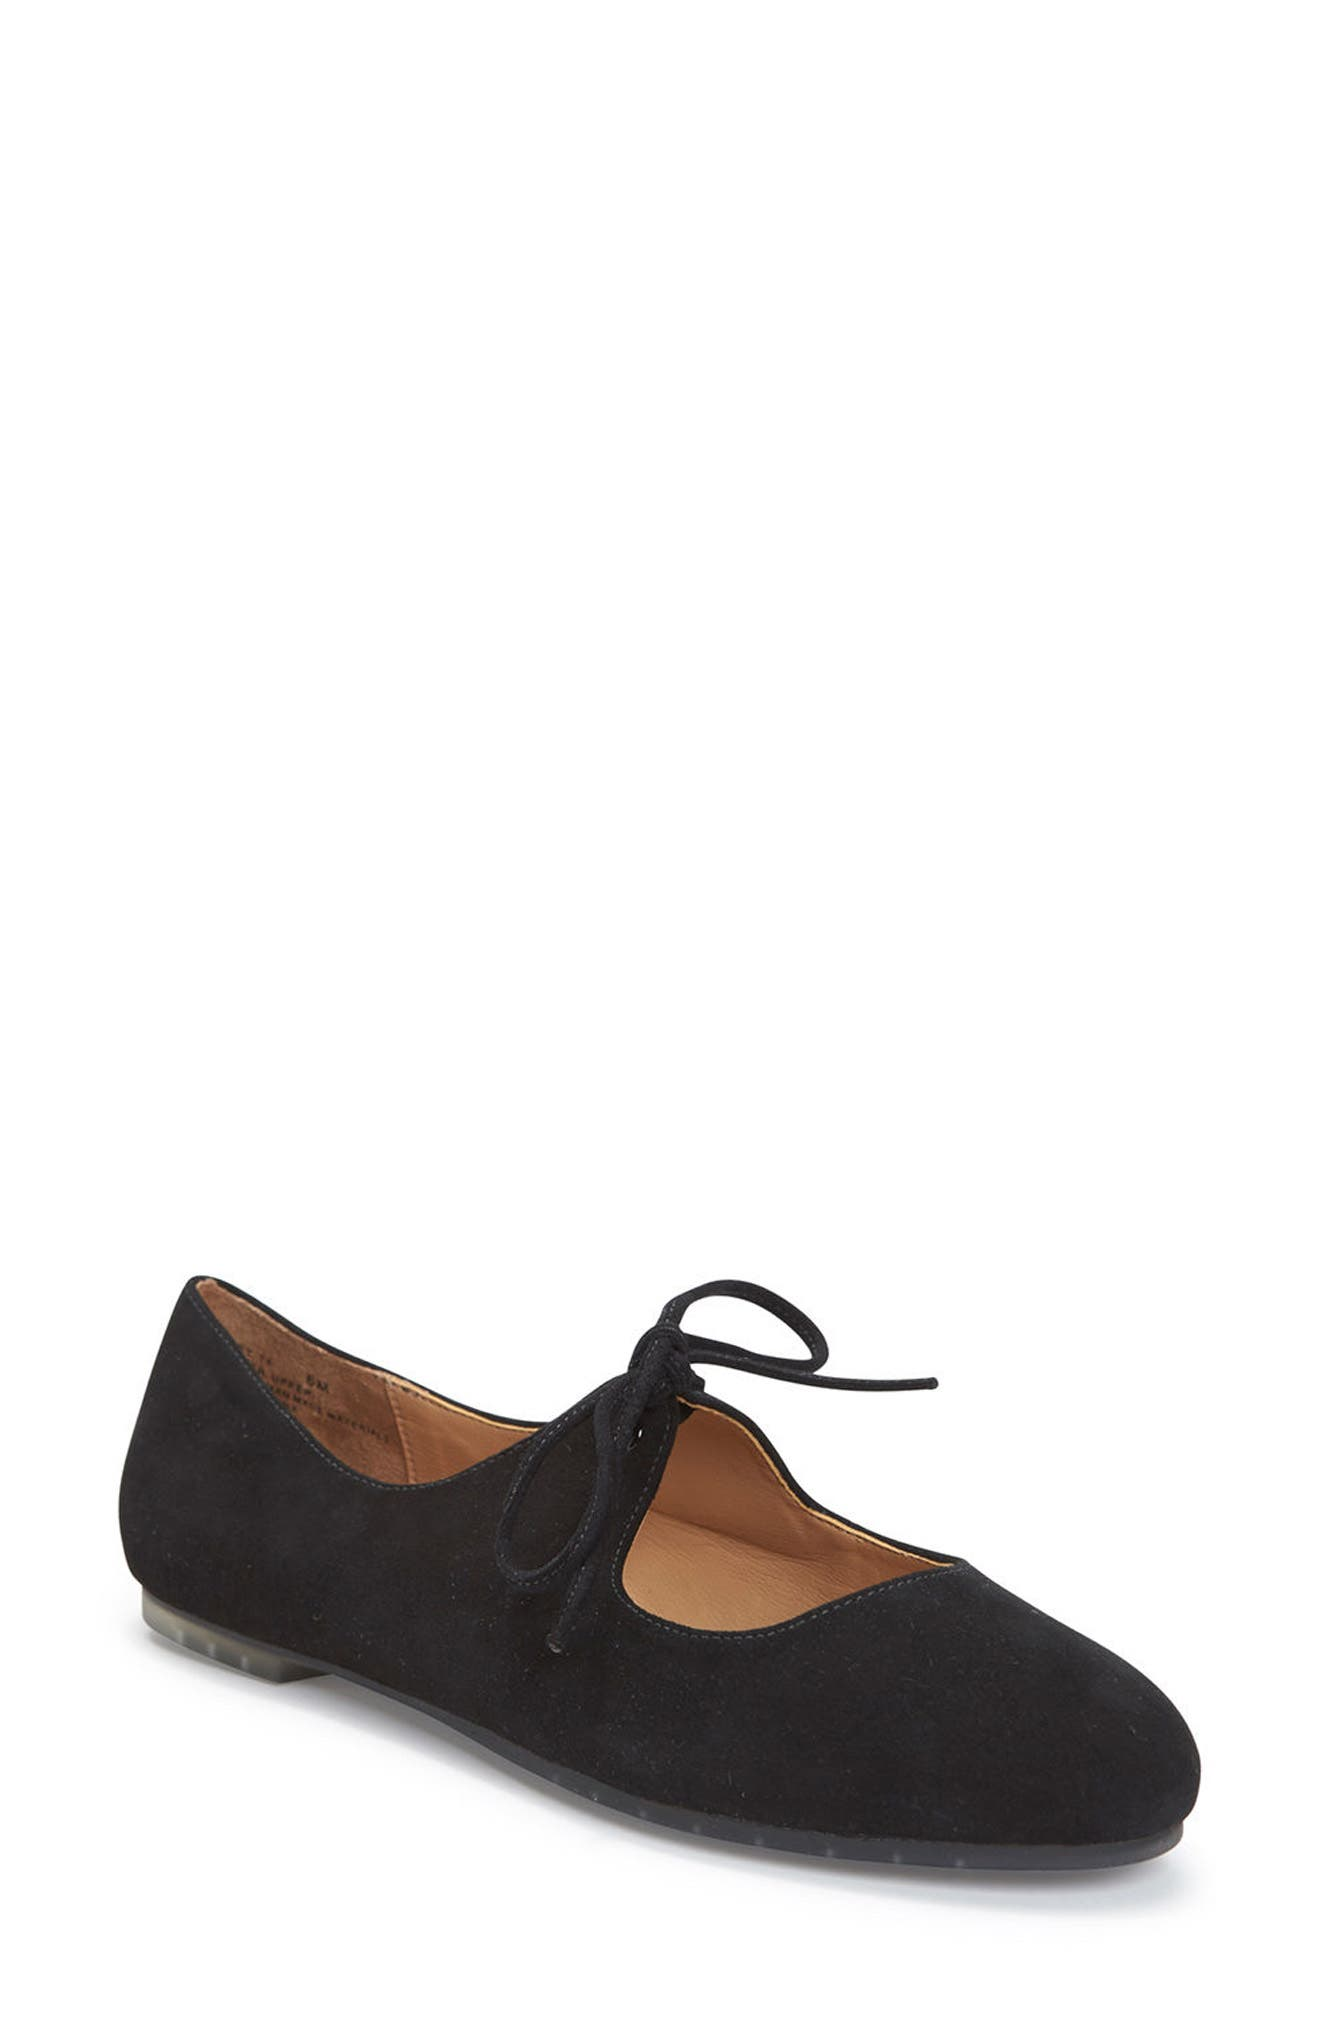 Cacey Mary Jane Flat,                         Main,                         color, Black Suede